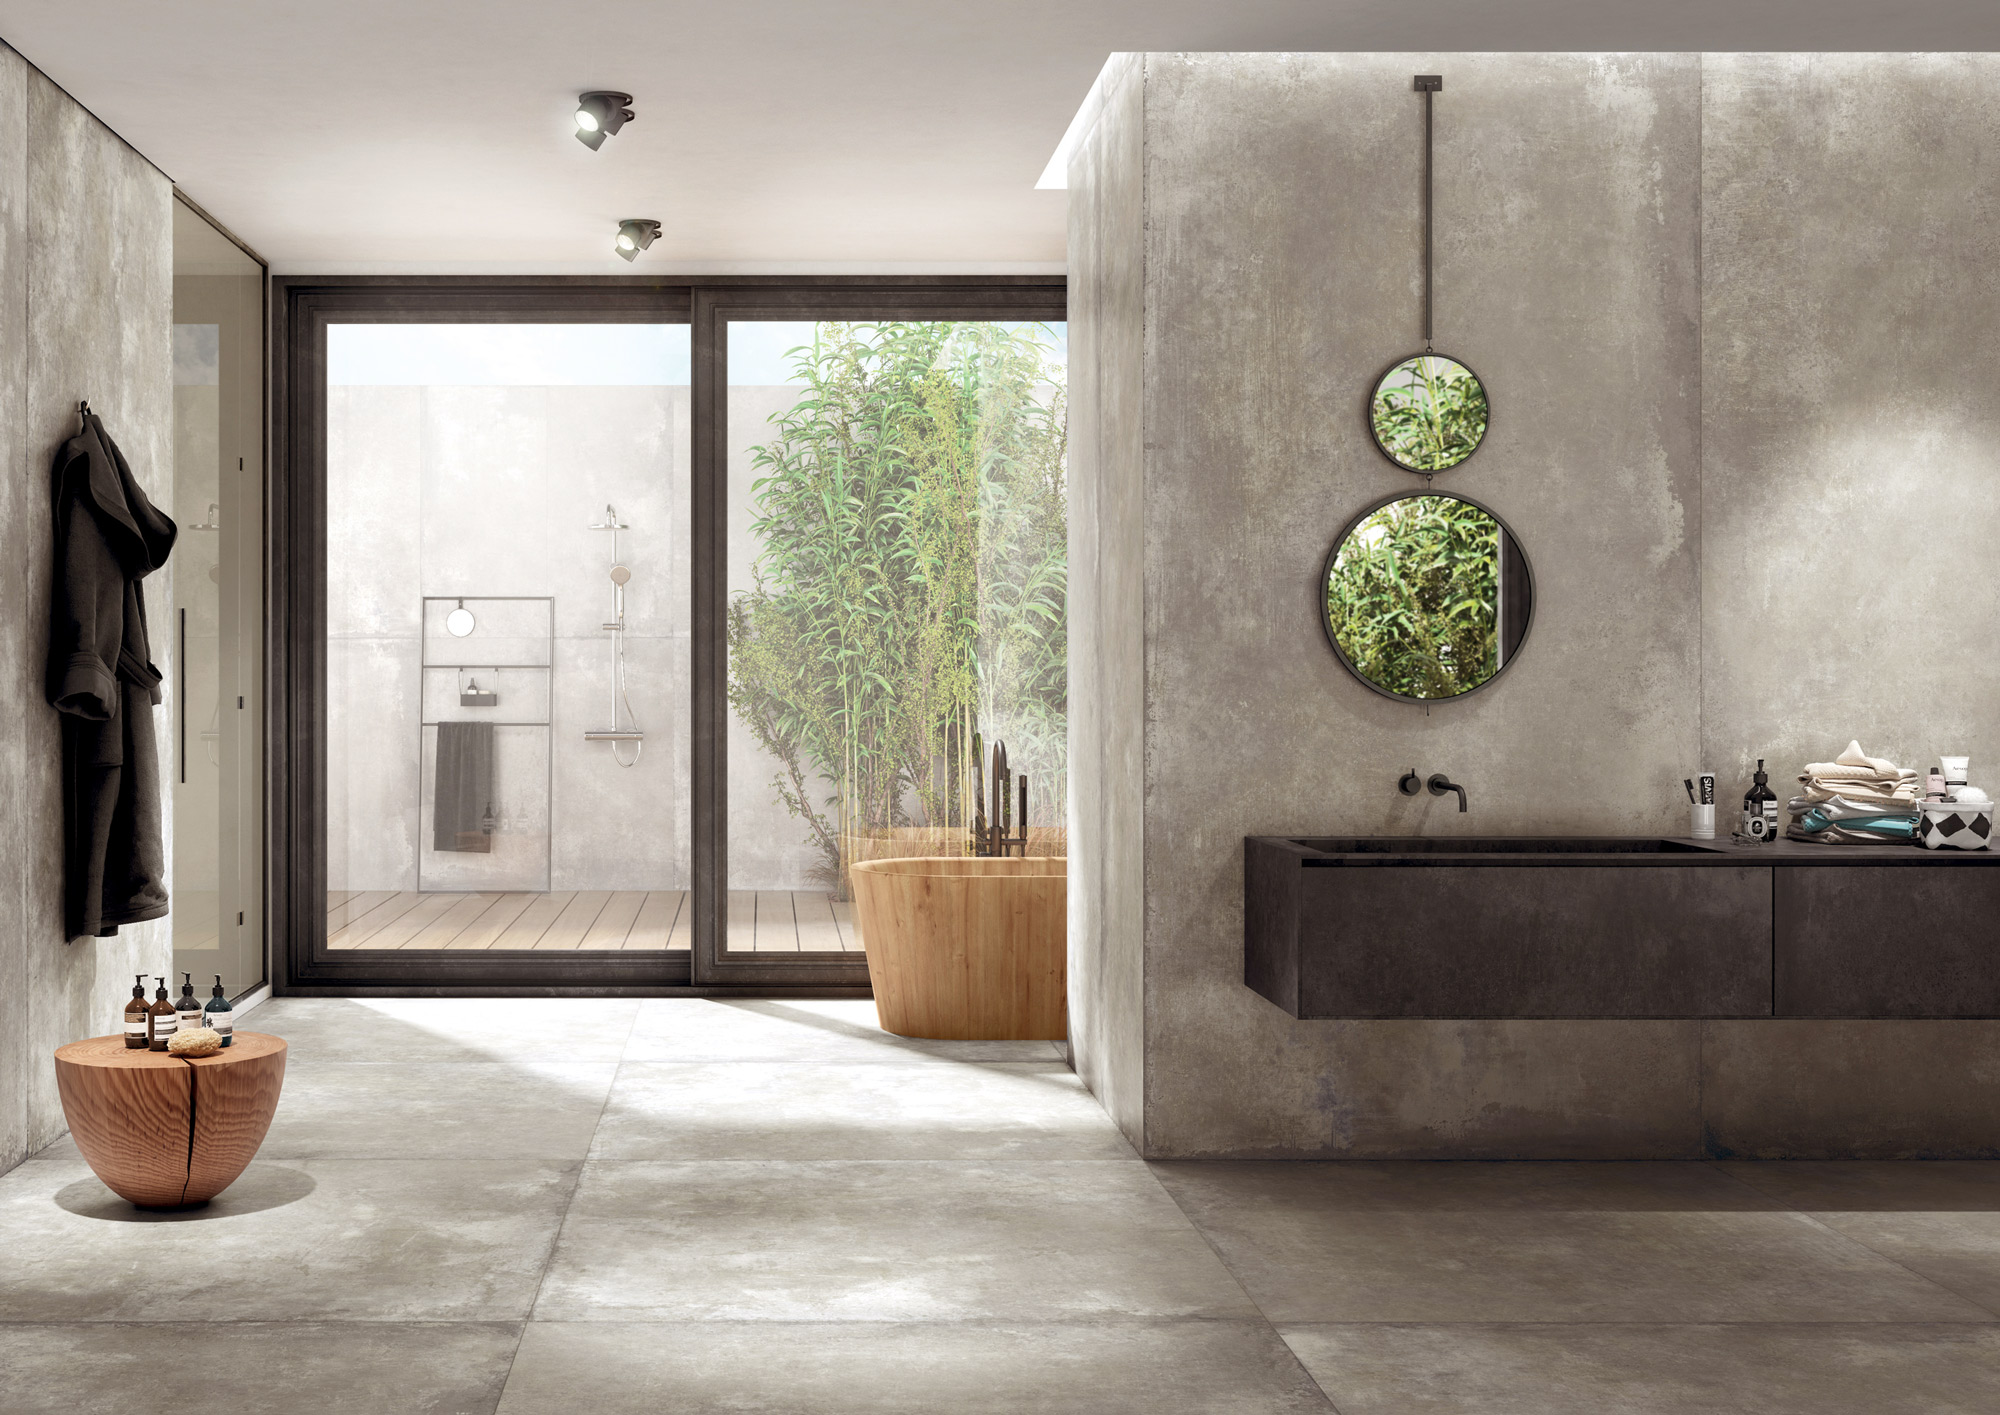 porcelain tile images: Calma range high quality photo